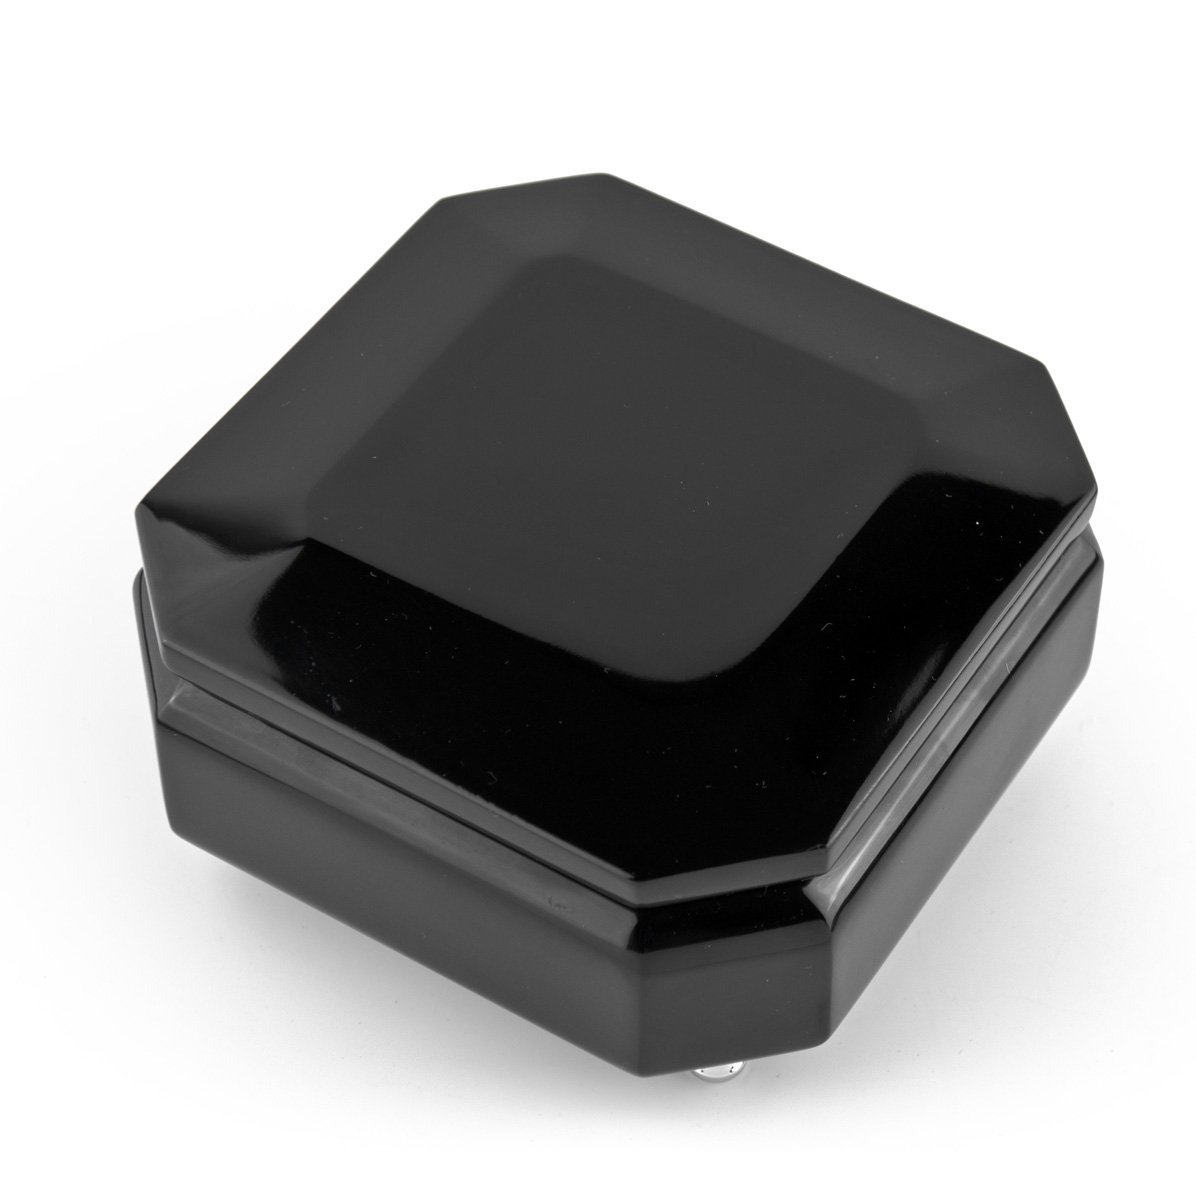 Gorgeous 18 Note Hi Gloss Midnight Black Modern Beveled Musical Jewelry Box - Can You Feel the Love Tonight (The Lion King) by MusicBoxAttic (Image #1)